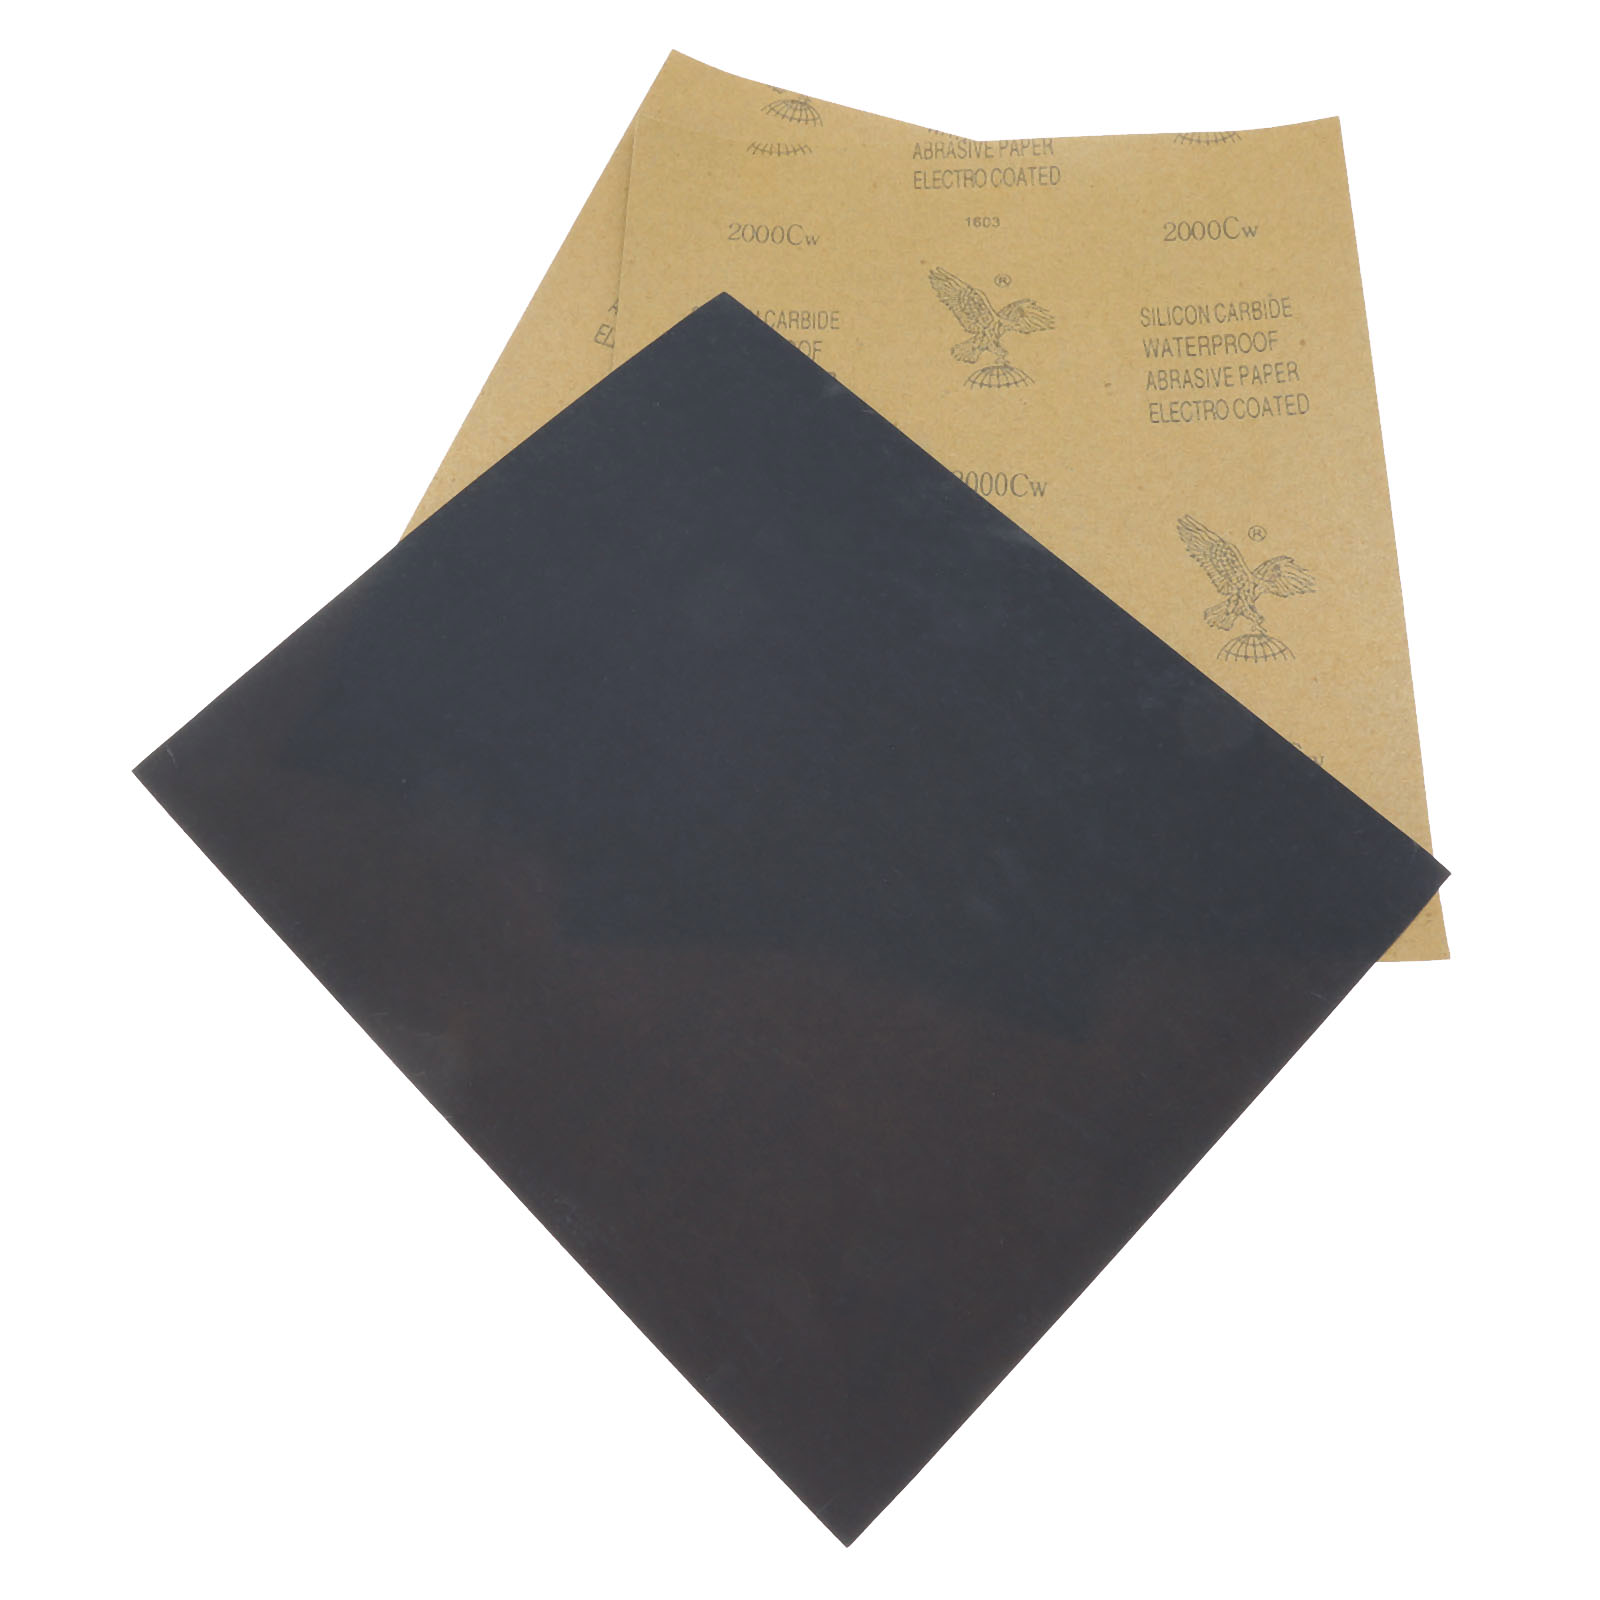 3 Sheets Sandpaper Waterproof Abrasive Paper Sand Paper Silicone Carbide Polishing Grinding Wet/dry Tool 2000 Grit 28 X 23cm